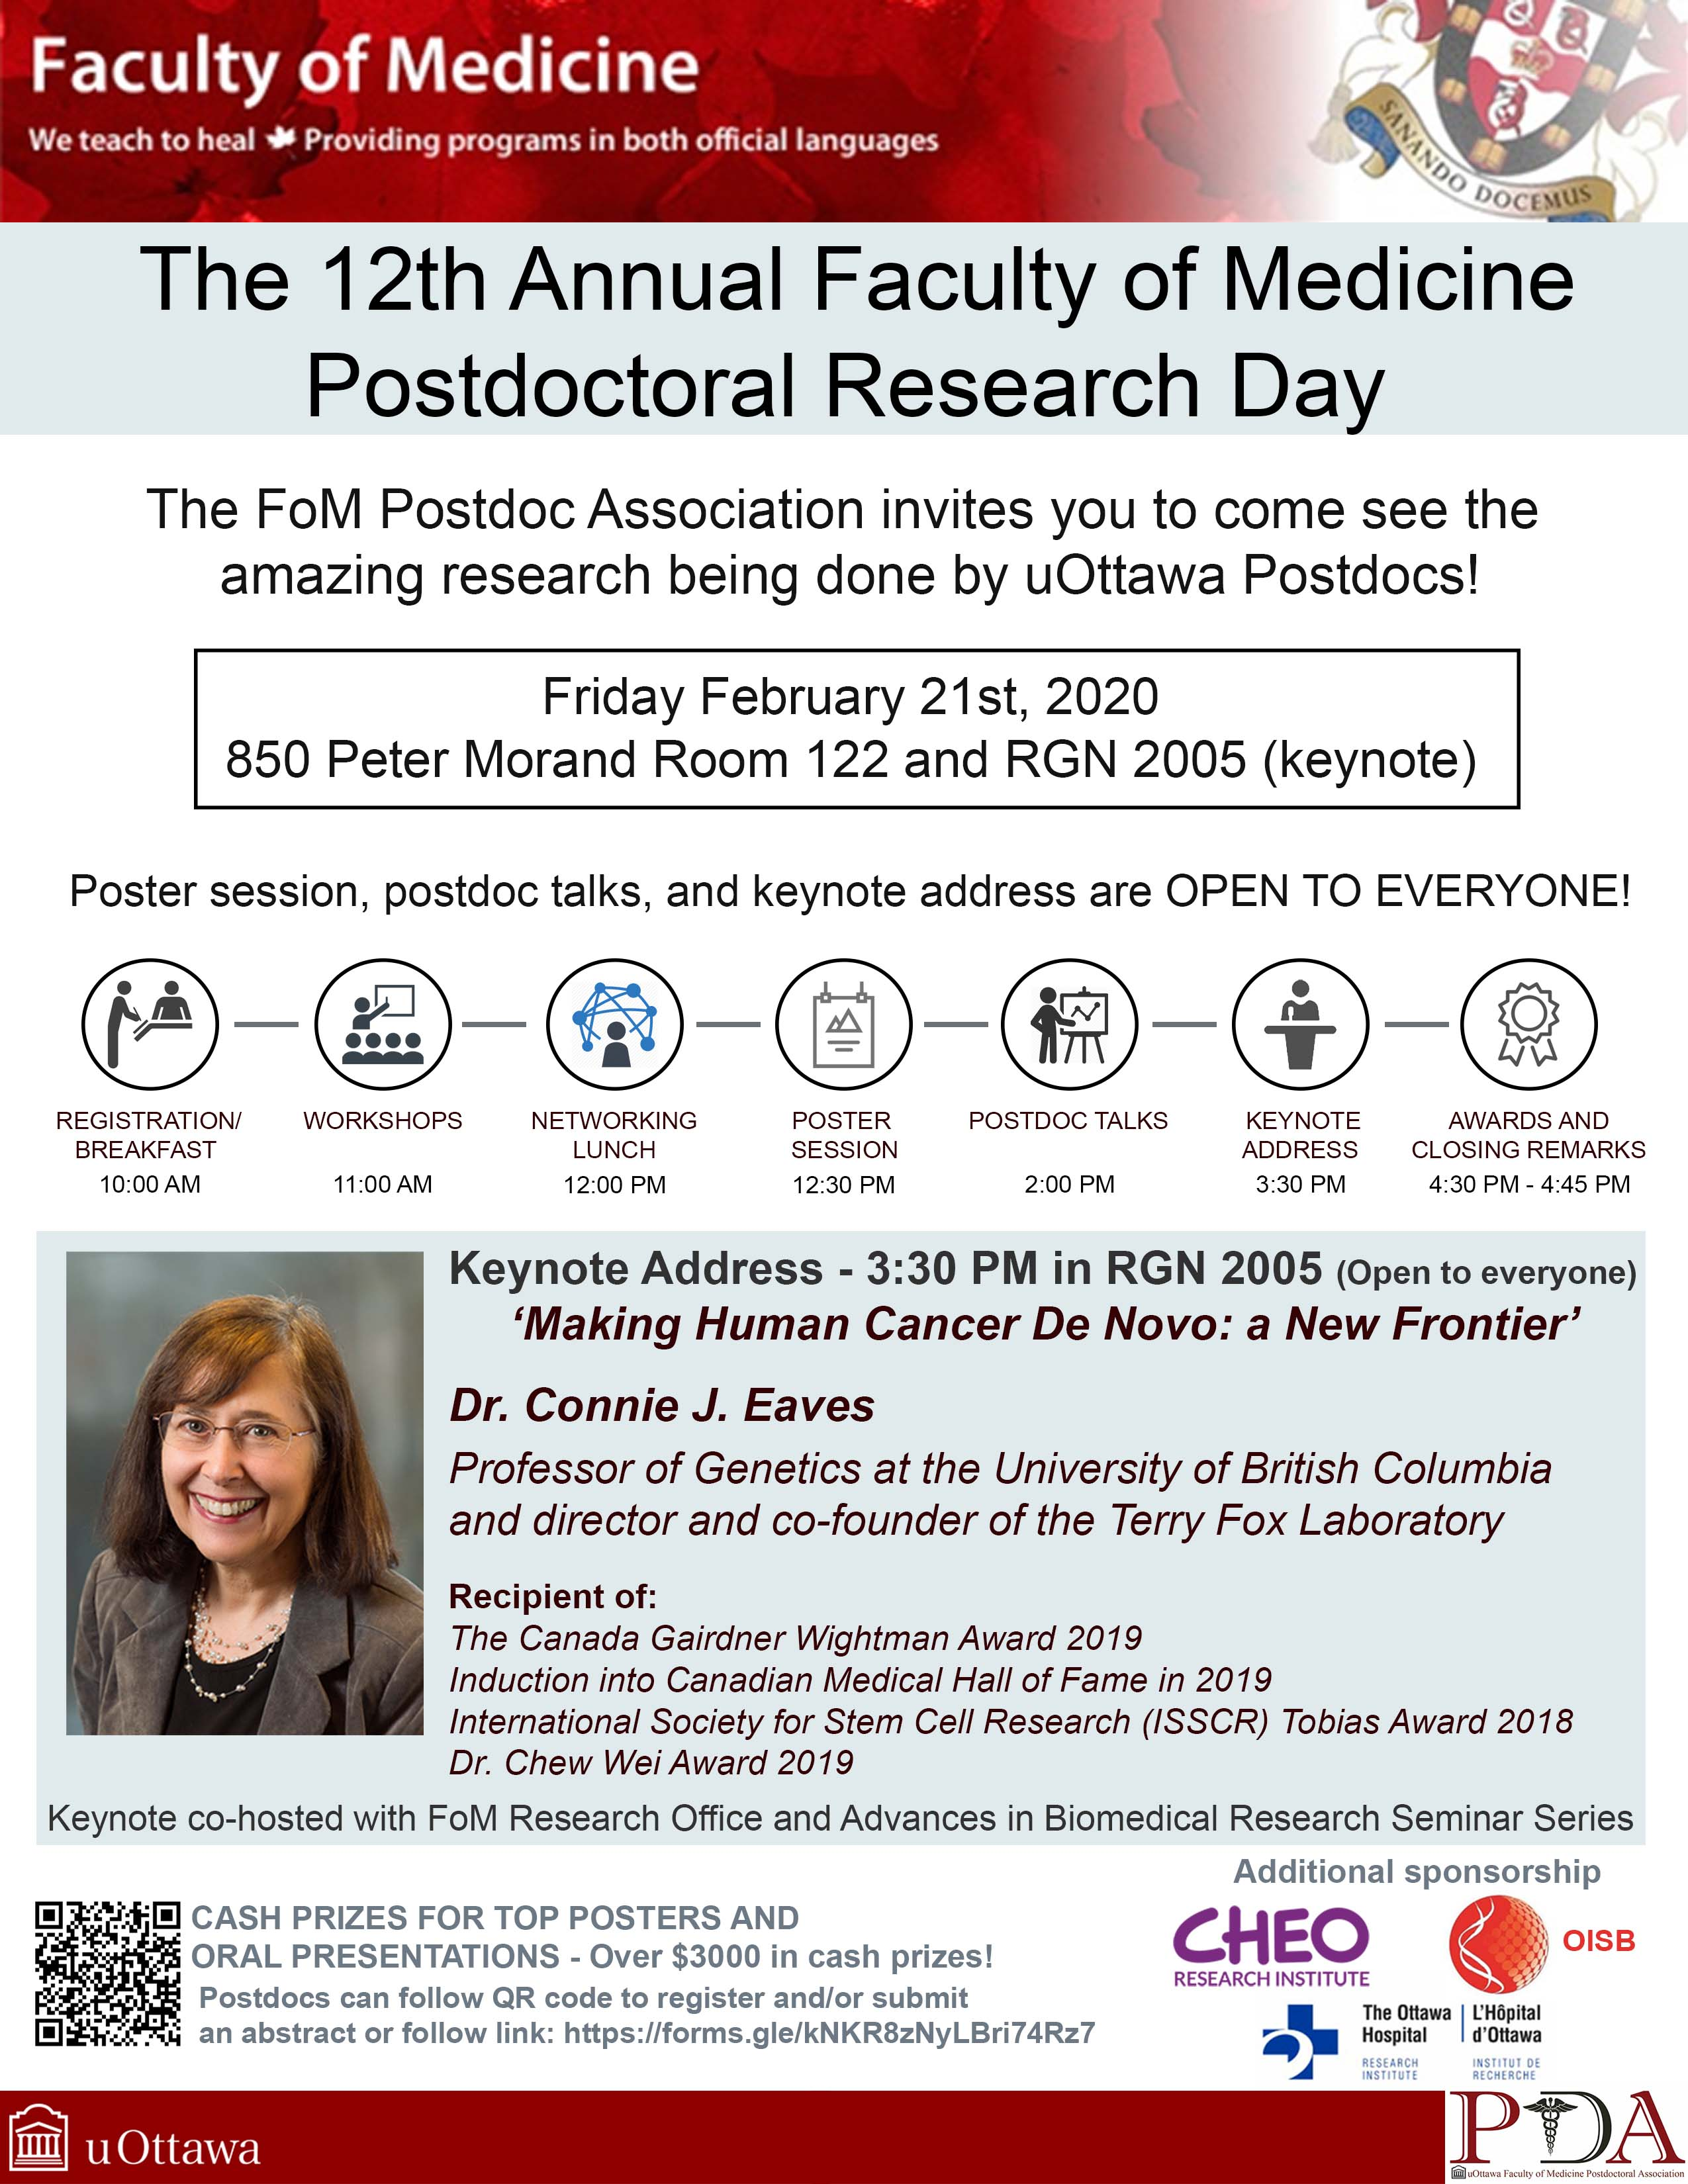 poster for Postdoctoral Research Day and Pic of Dr. Connie Eaves